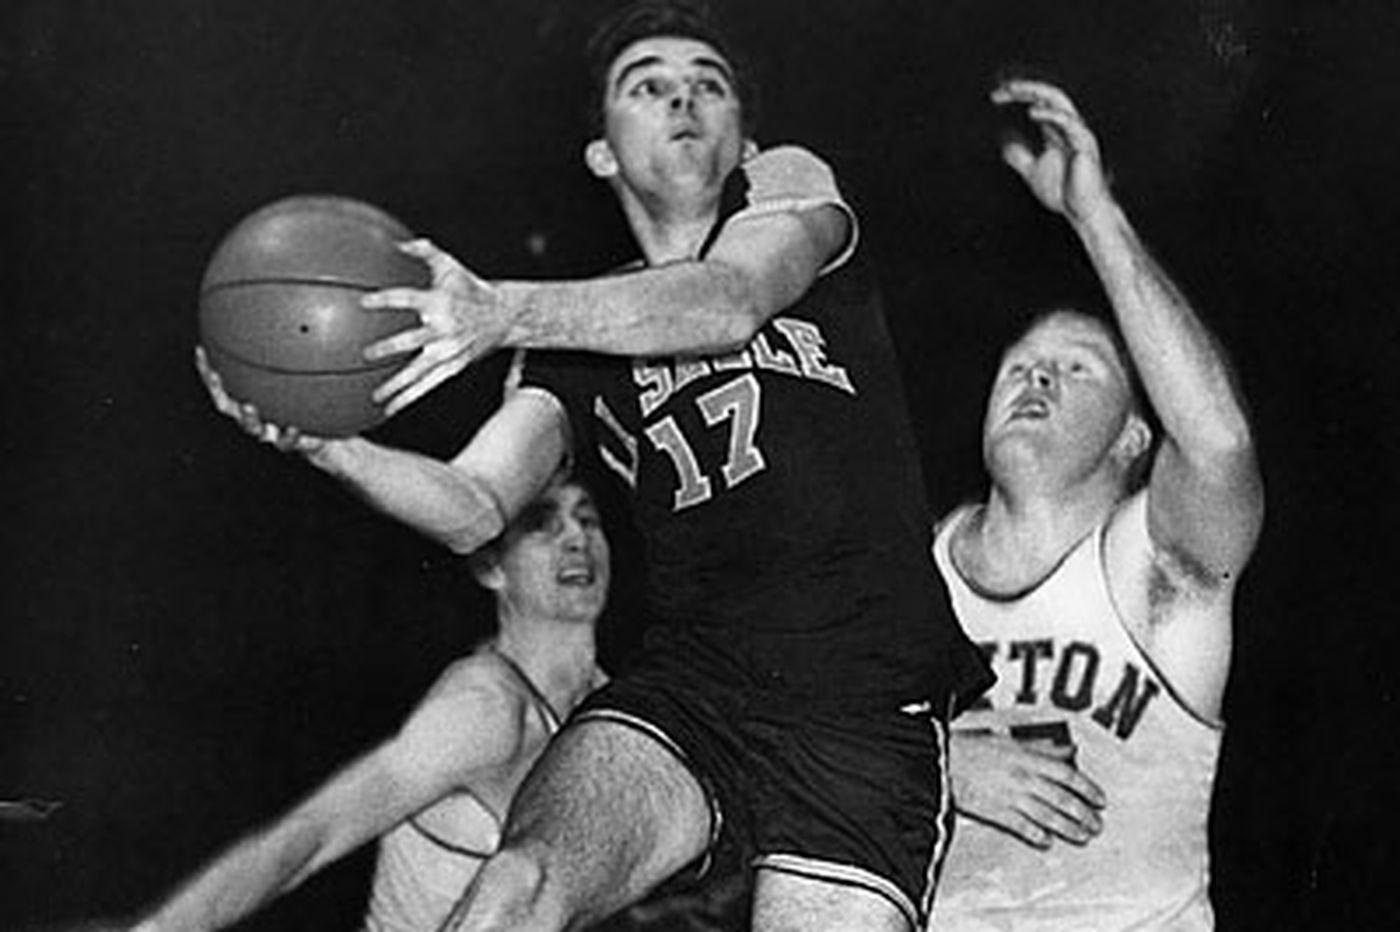 Former La Salle star Donnelly dies at age 81